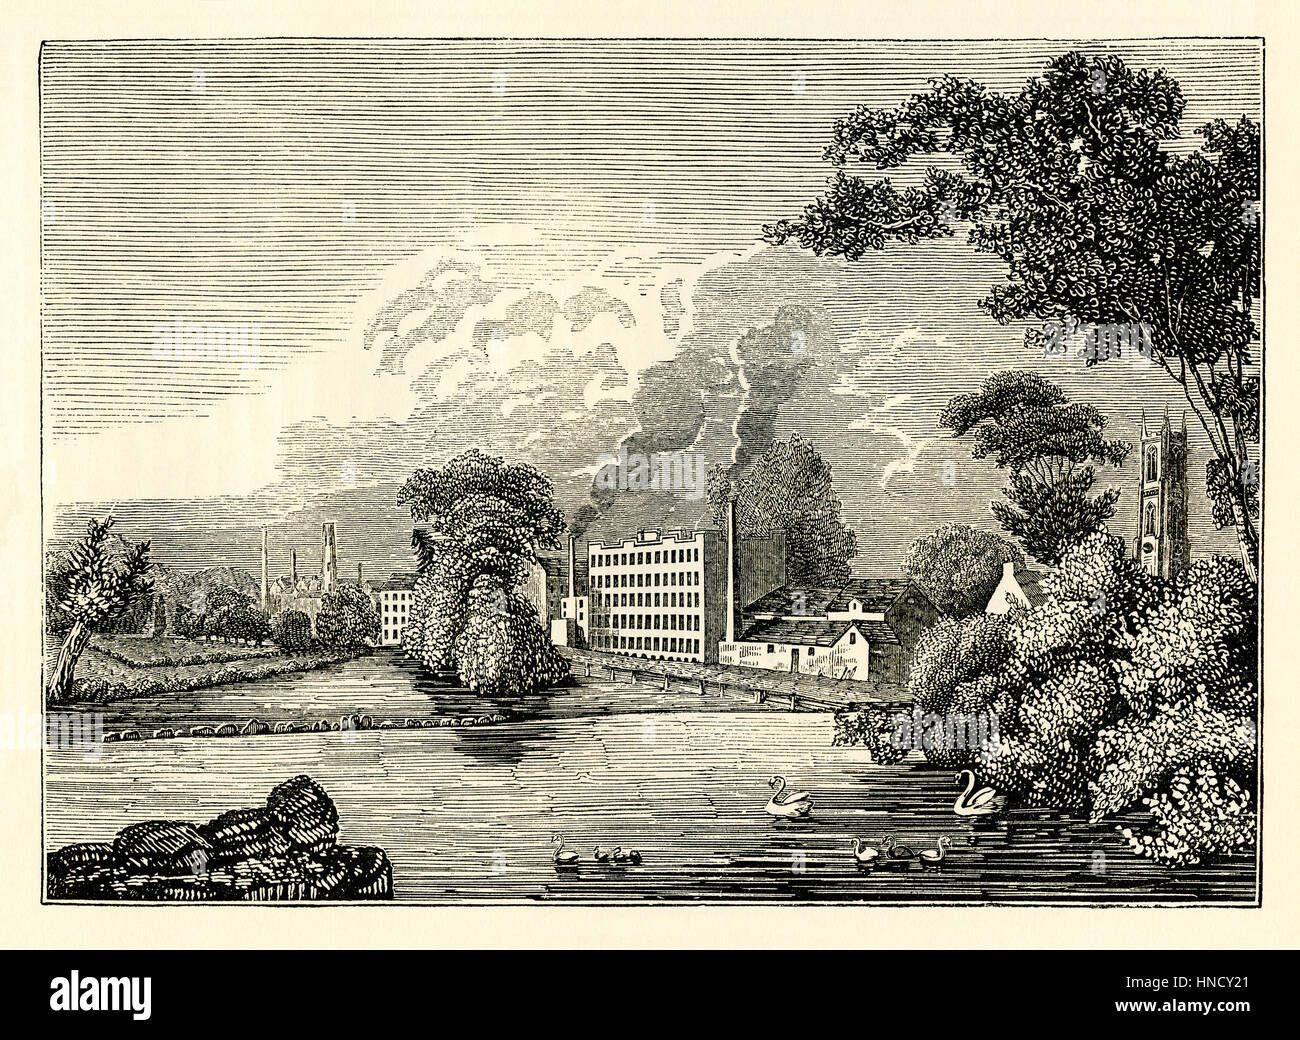 Lombe's Mill (also known as the Italian Works), Derby, – an old engraving c. 1750 - Stock Image